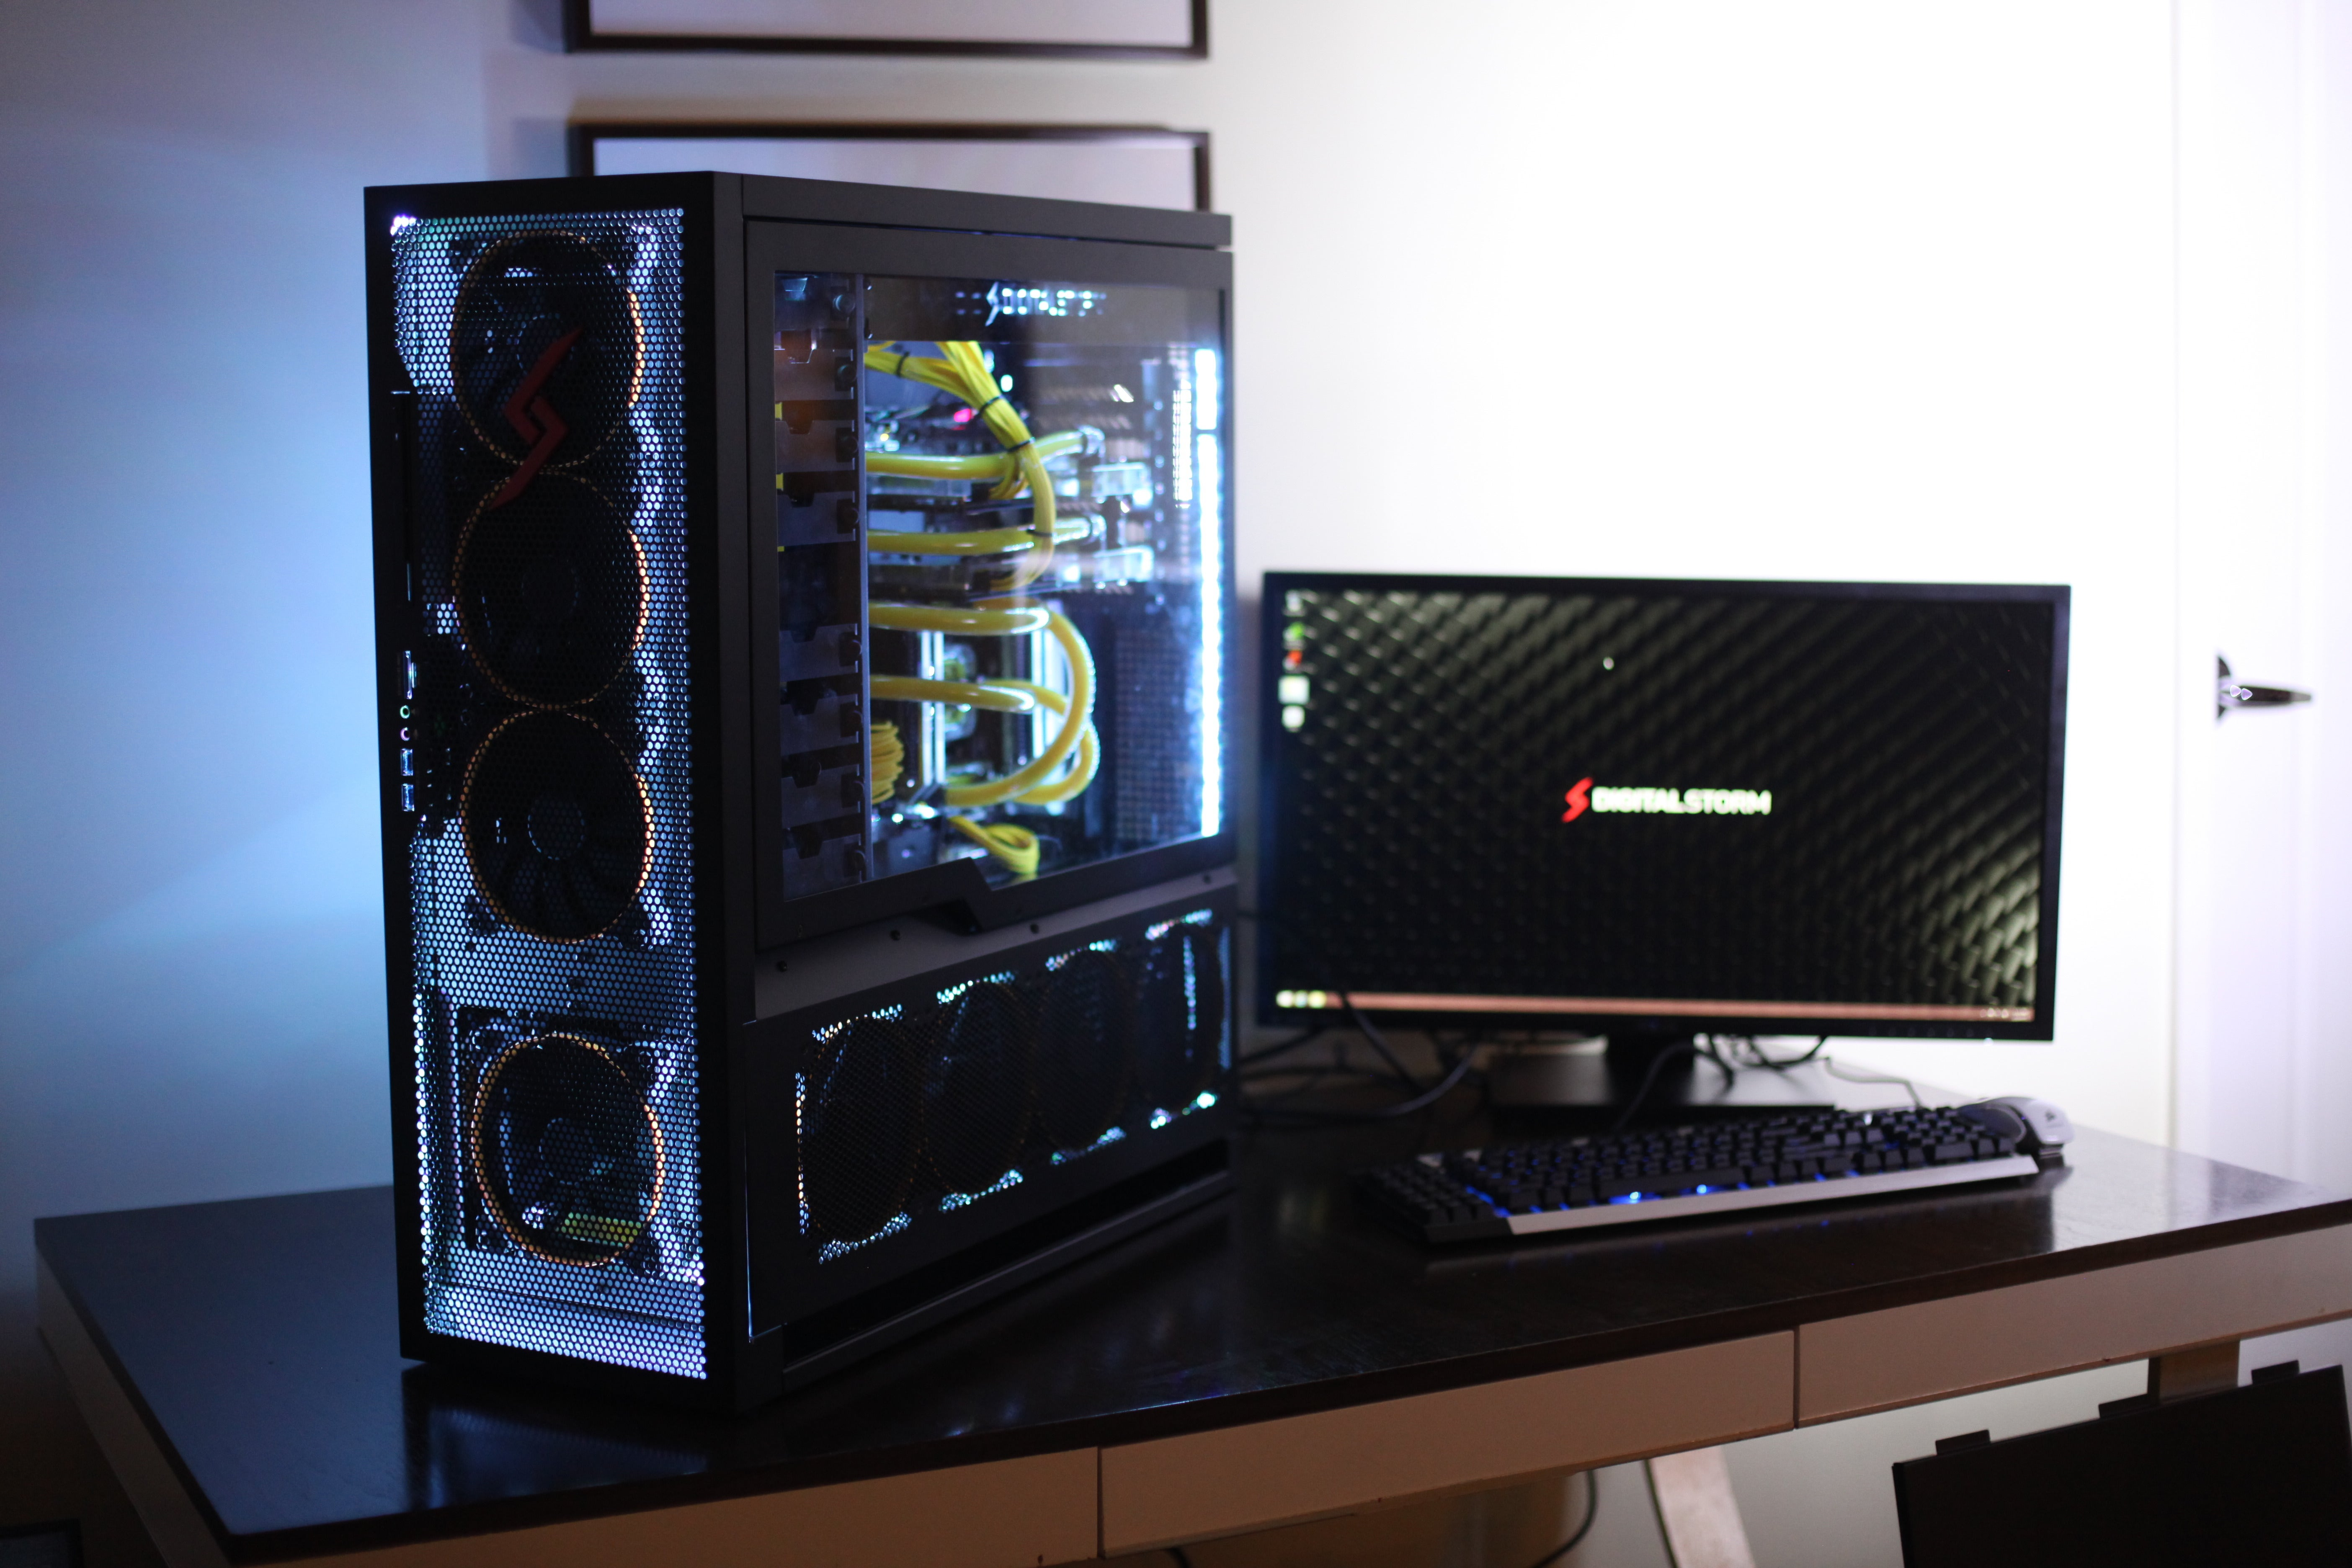 The Coolest Craziest Pc Mods And Builds Of 2015 So Far